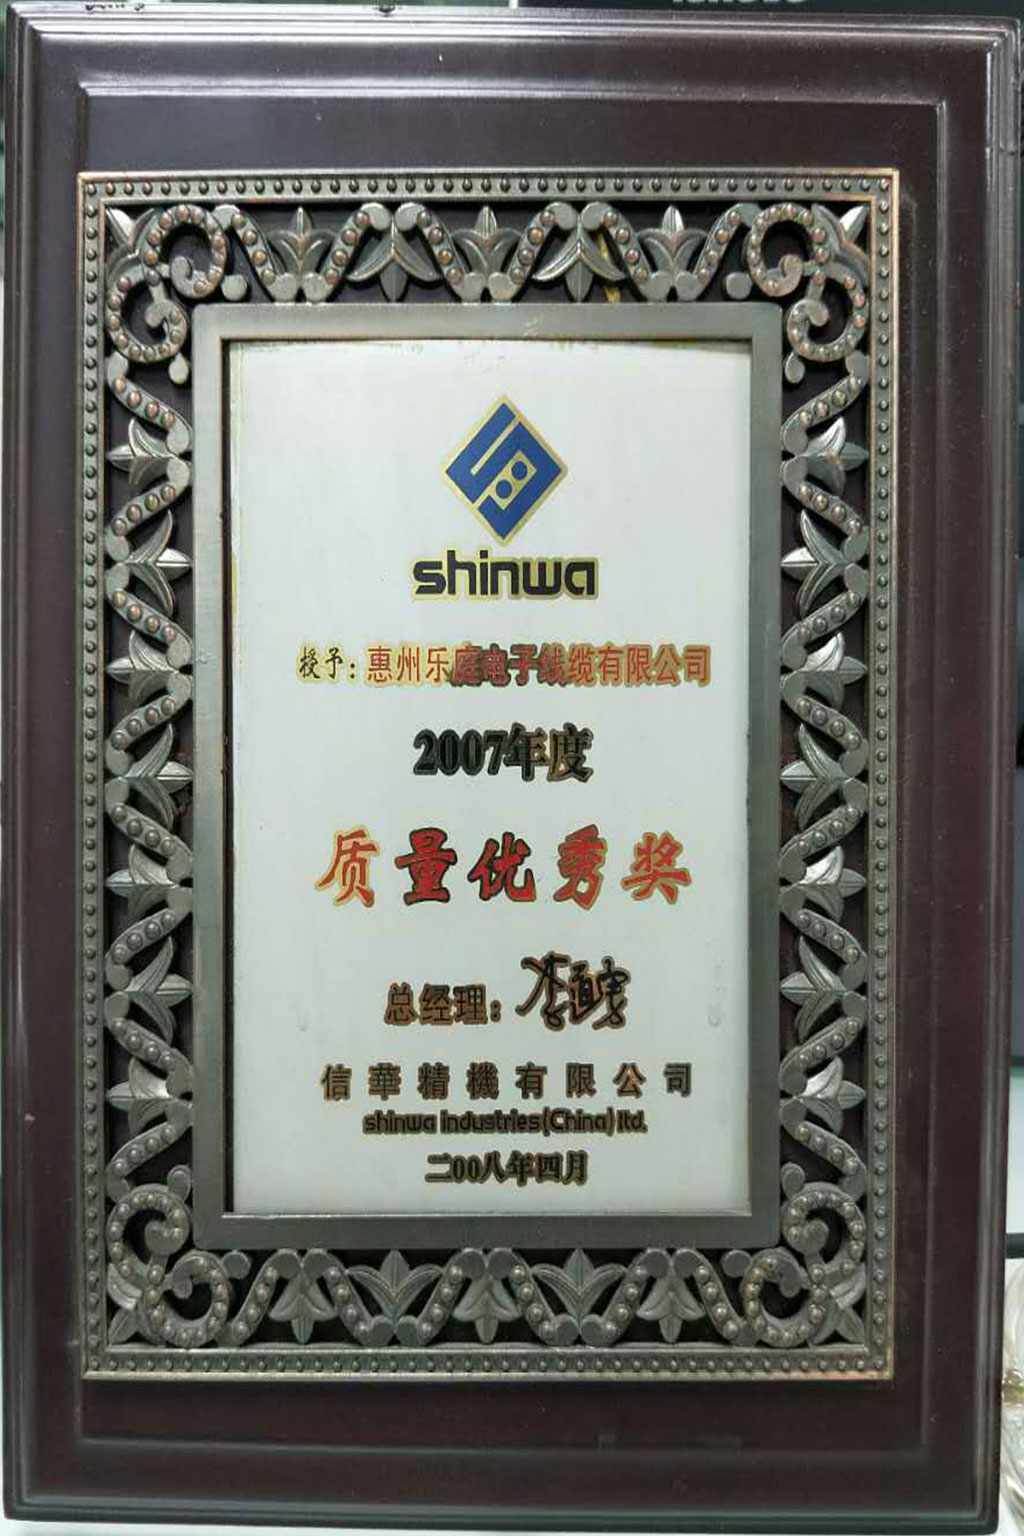 Shinwa Excellent Quality Award - Huizhou LTK Electronic Cable Ltd